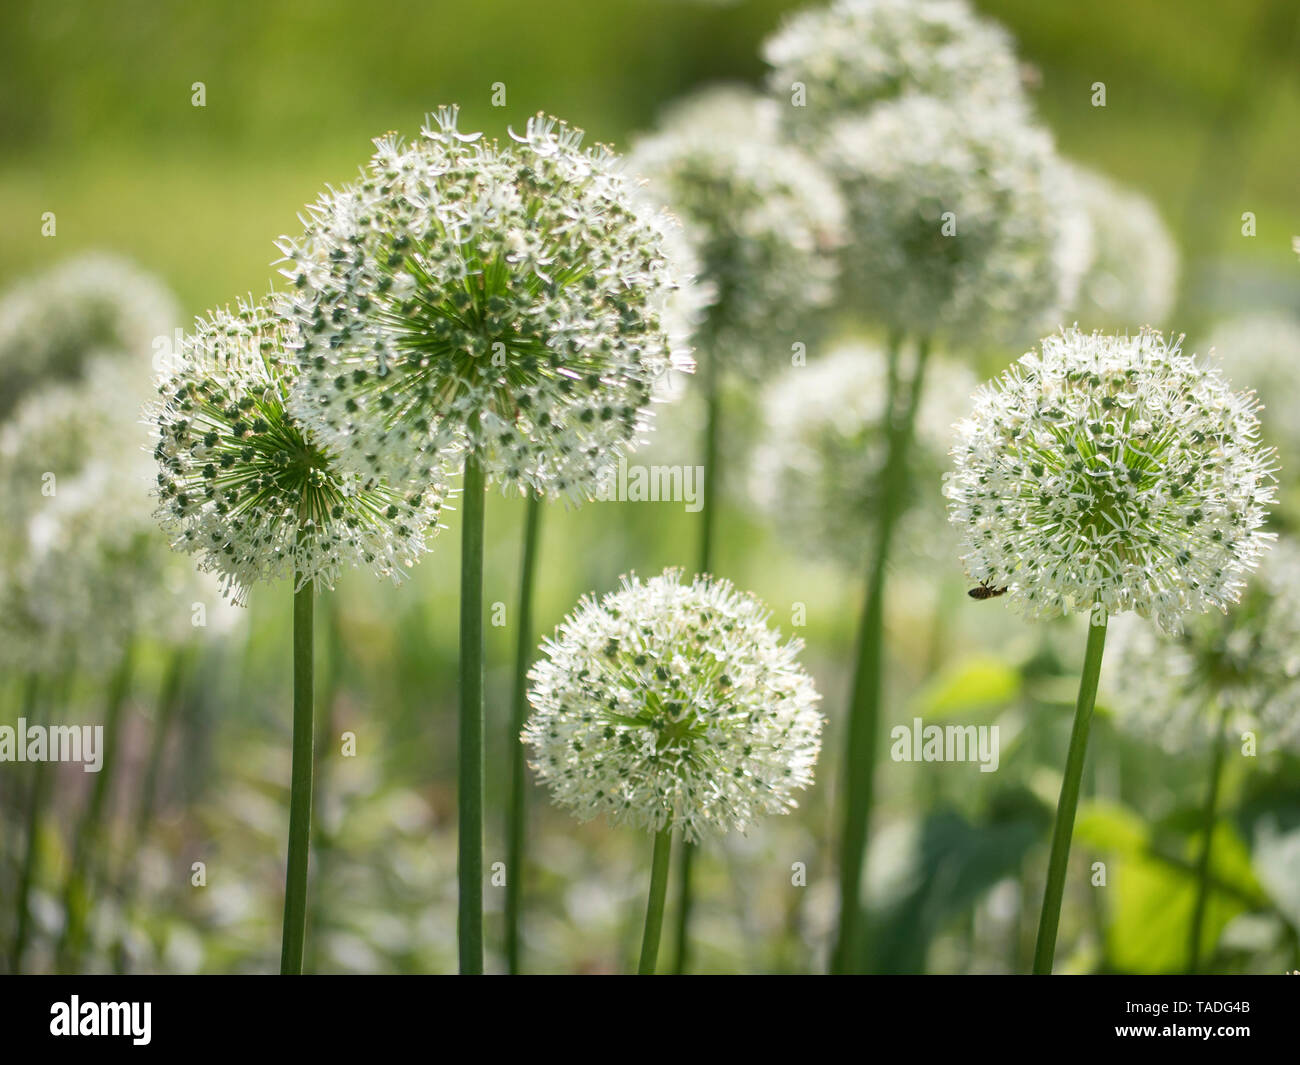 White giant alliums flowering in spring boarder - Stock Image